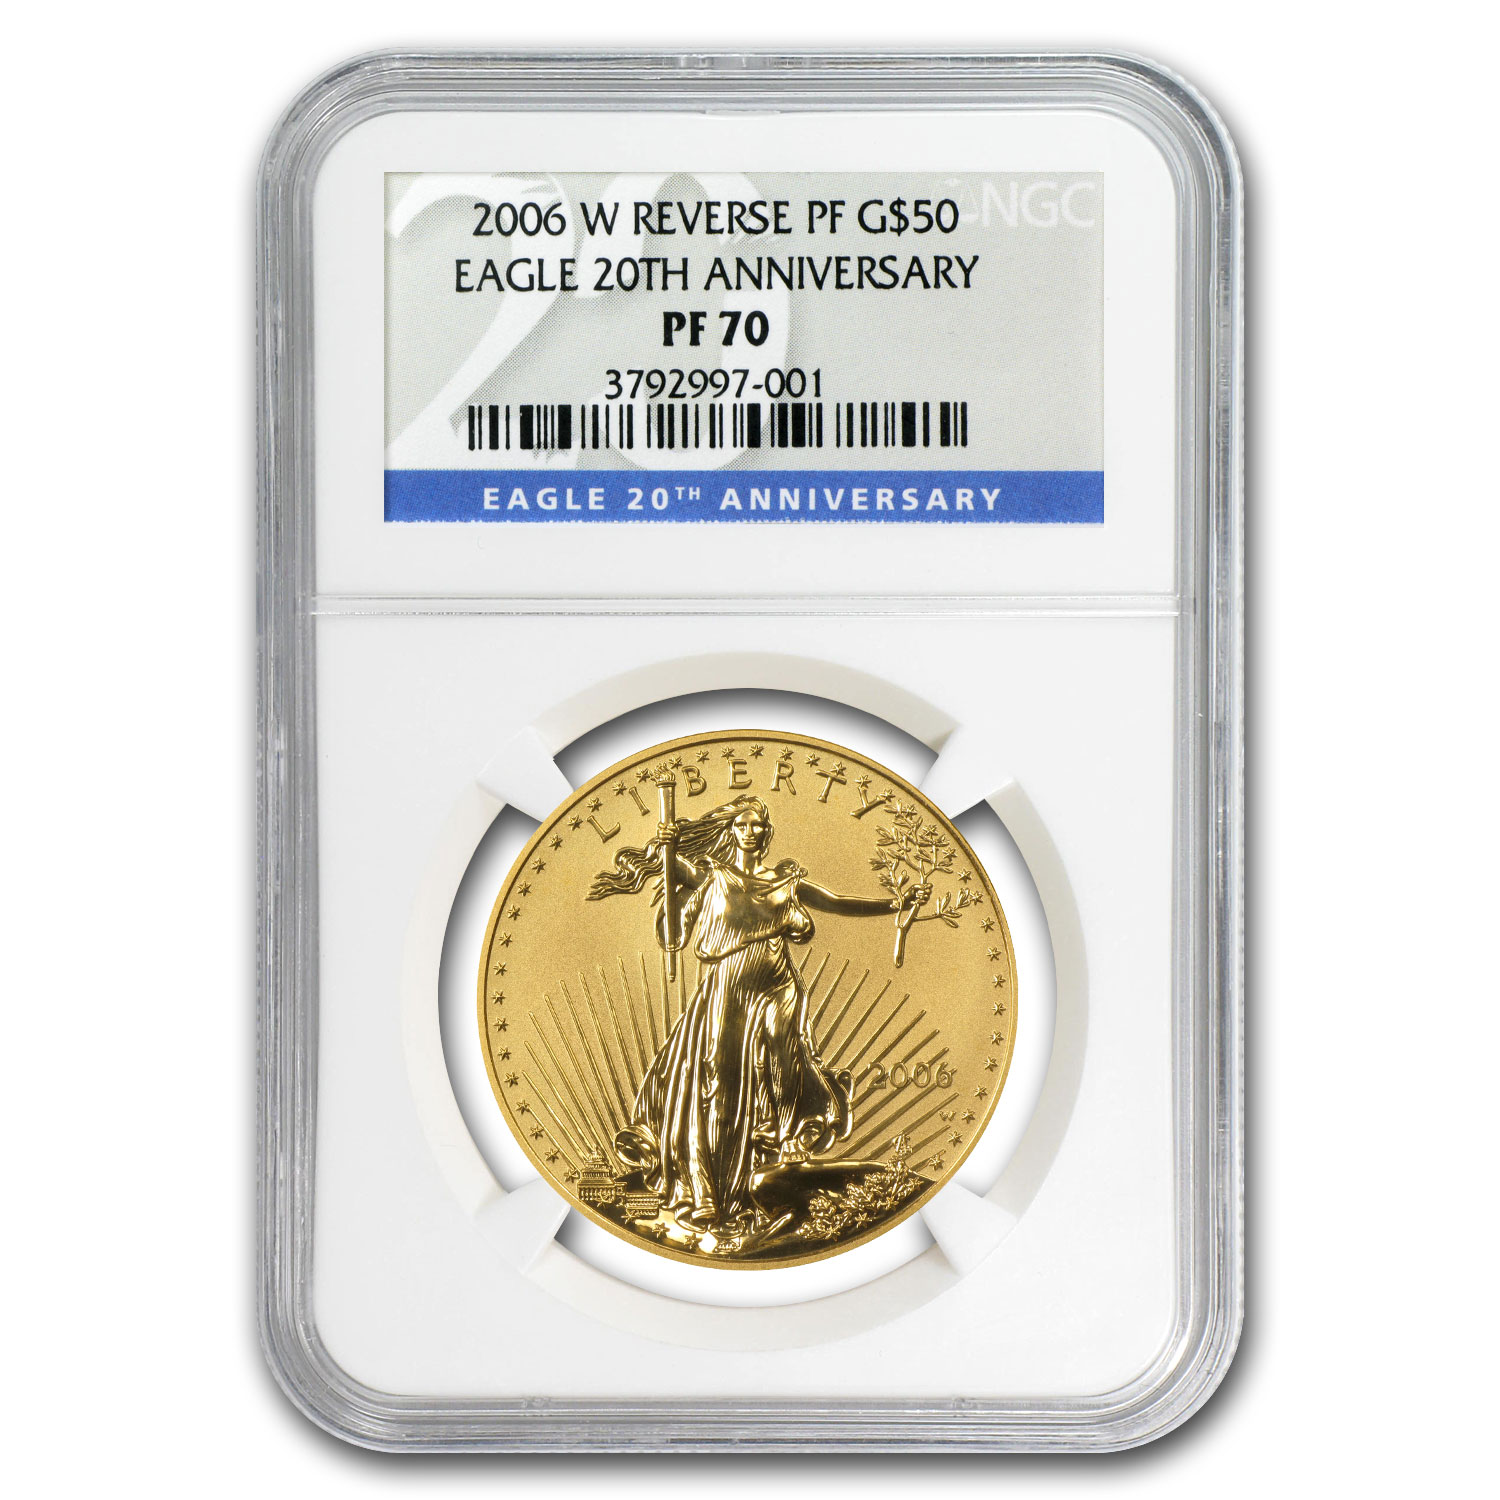 2006-W 1 oz Reverse Proof Gold Eagle PF-70 NGC (20th Anniv)